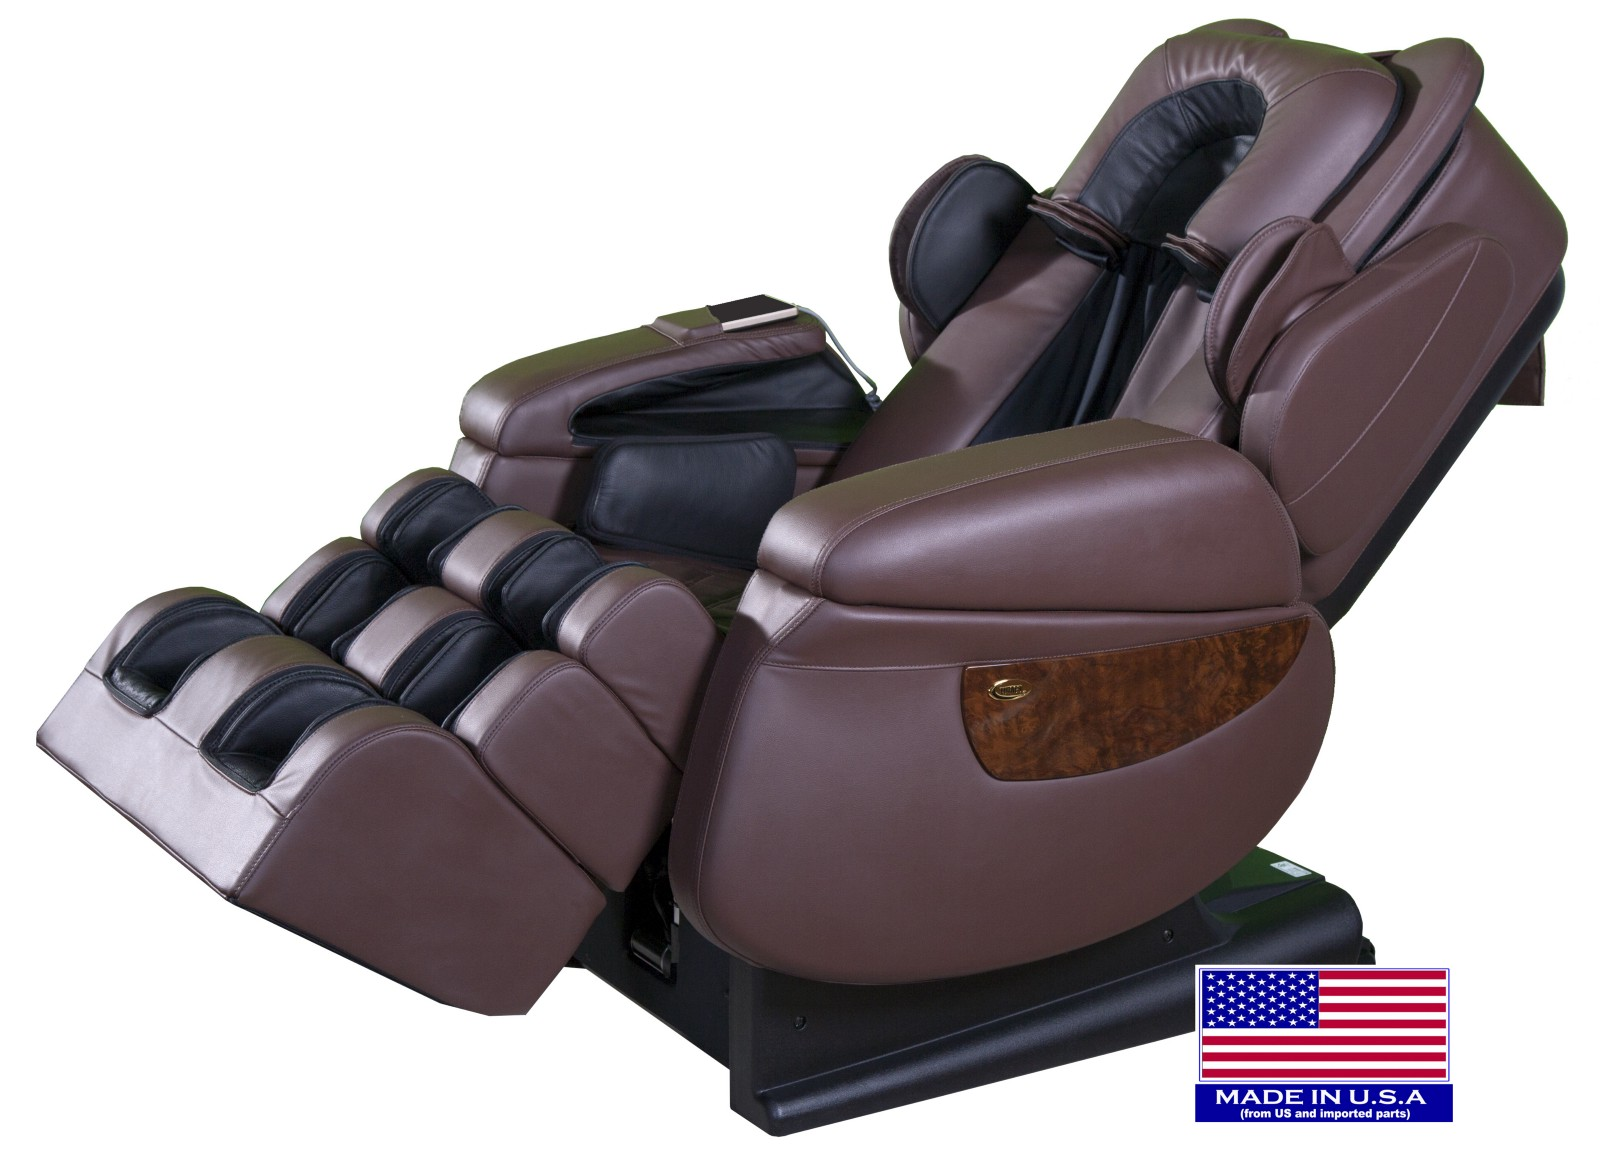 Best Massage Chair In The World Advantages And Disadvantages Of Using Massage Chairs